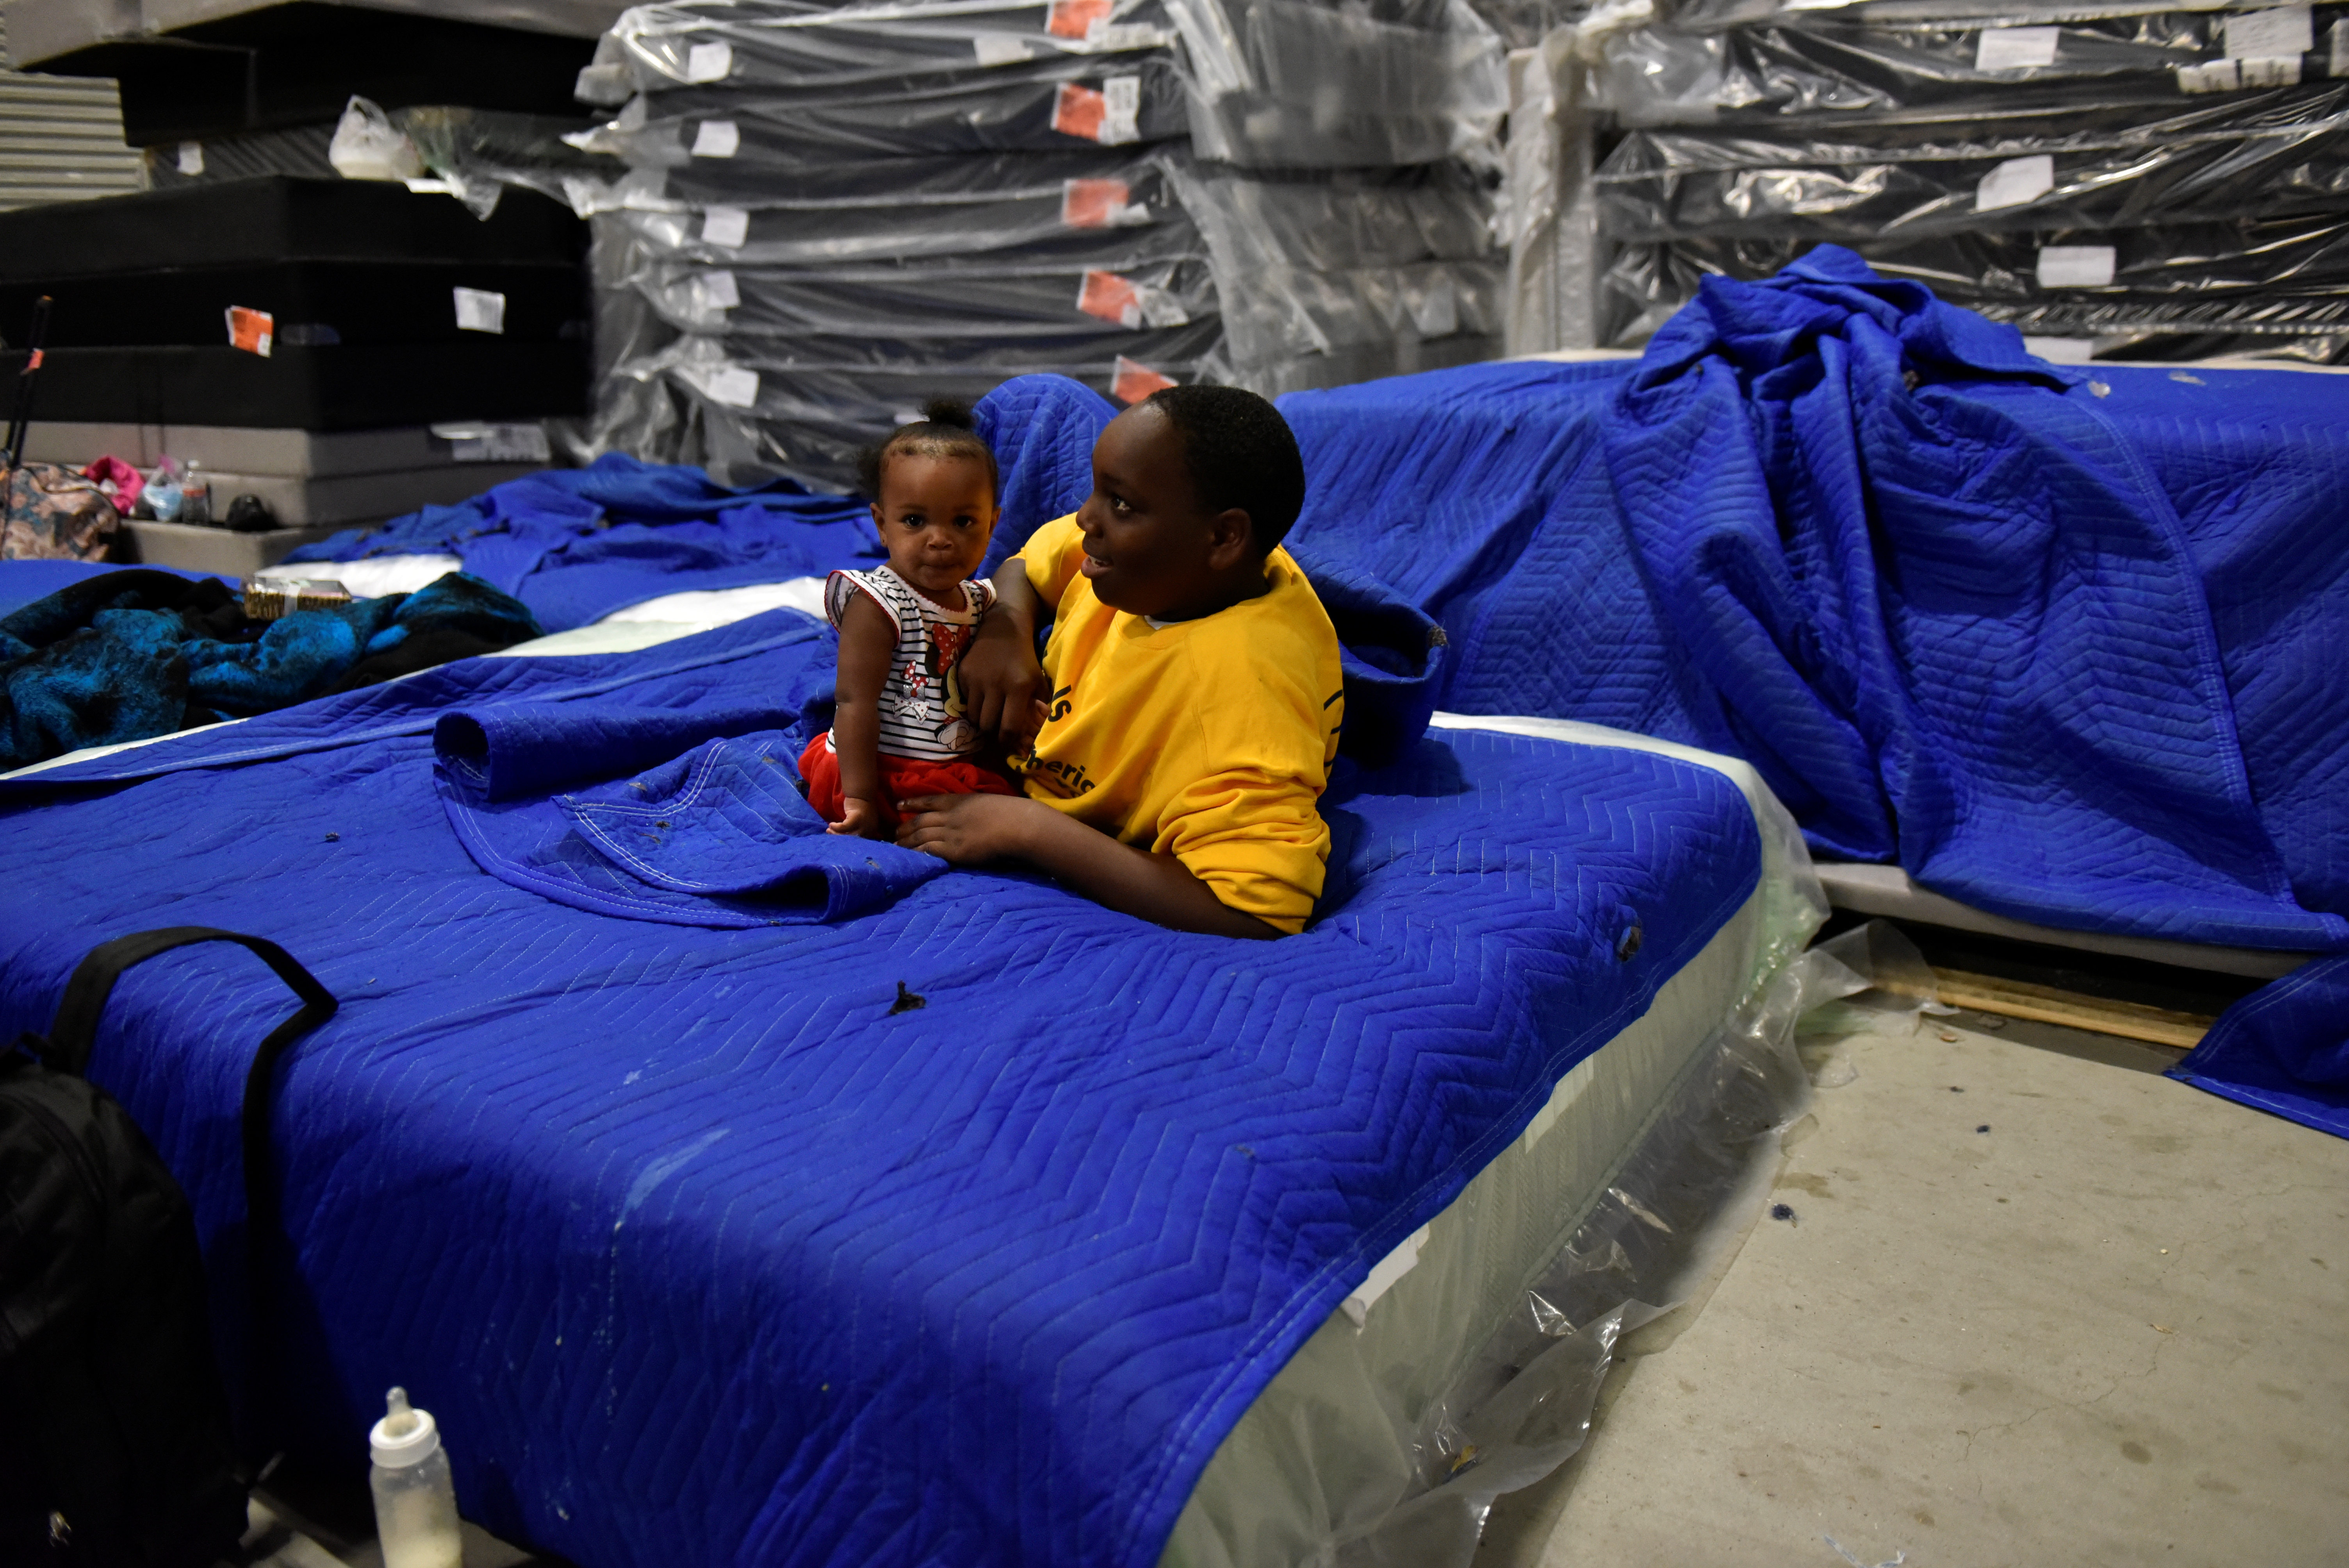 Jakobe Thomas plays with his sister Journey Thomas, 1, in the warehouse at Gallery Furniture where they have been staying after evacuating their flooded home over the weekend, in Houston, Texas, U.S., August 29, 2017. REUTERS/Nick Oxford - RTX3DVUW